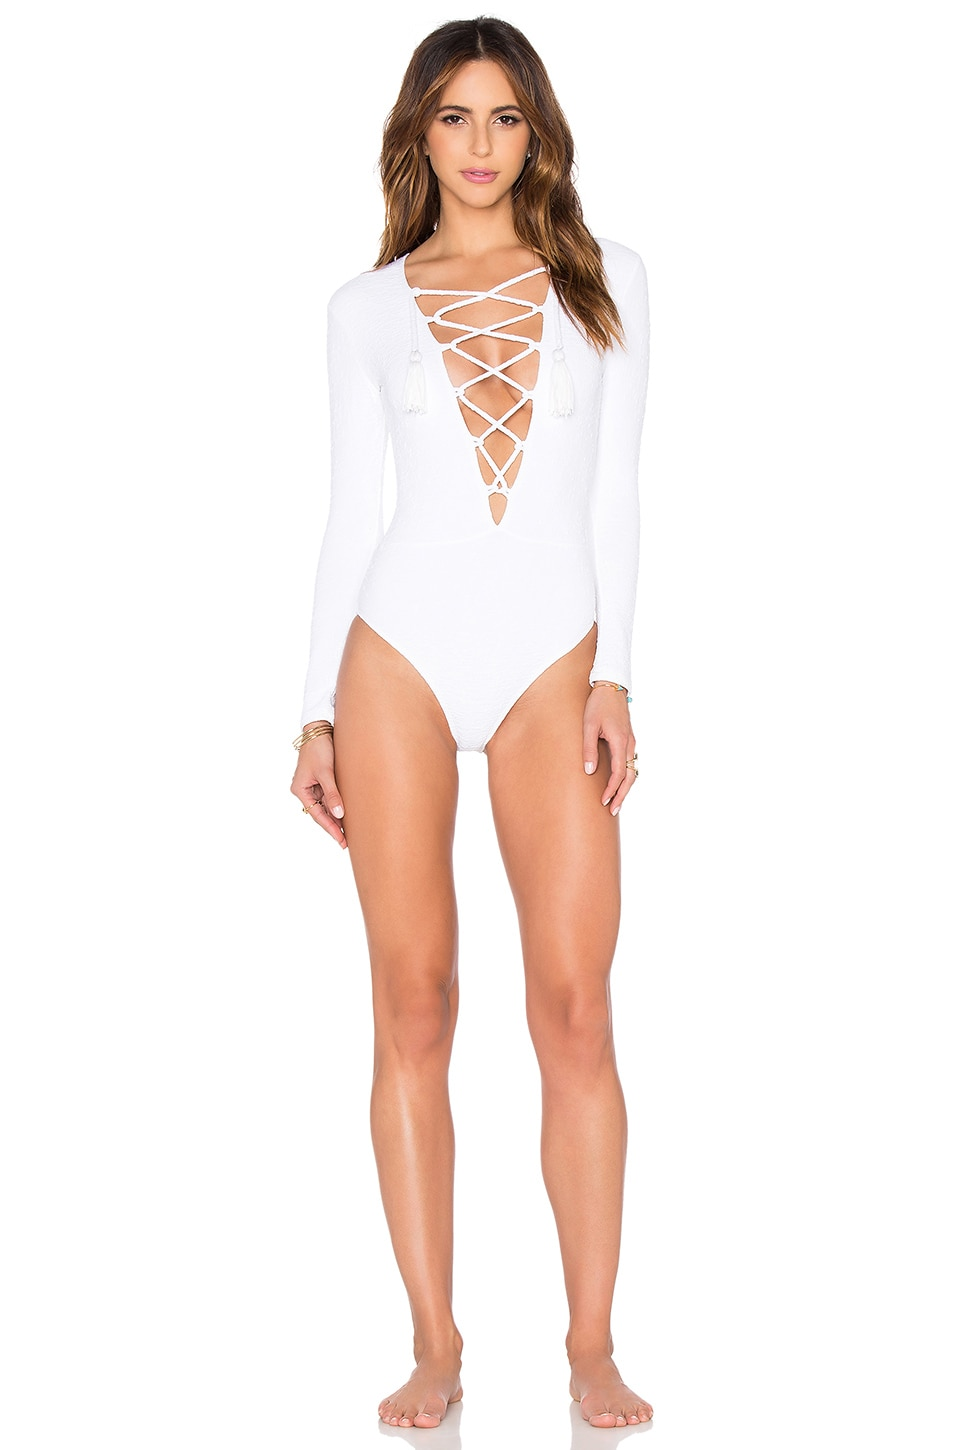 BEACH RIOT x Stone Cold Fox The Poppy One Piece in White Texture